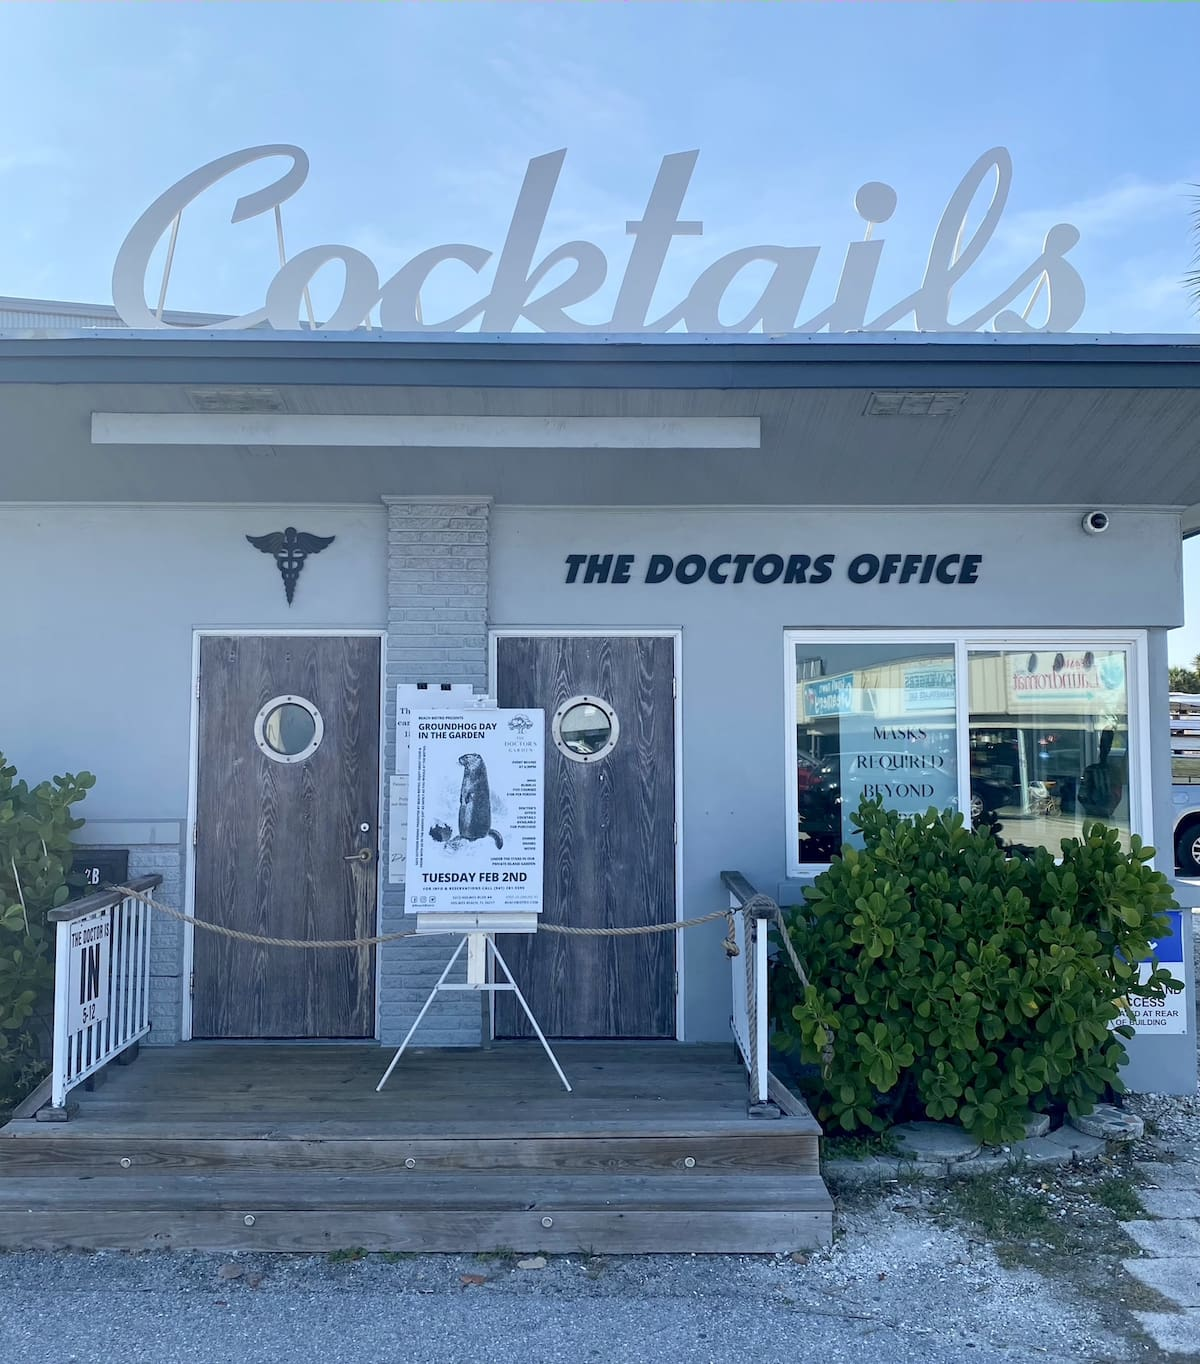 Put The Doctor's Office on your bucket list of things to do on Anna Maria Island.